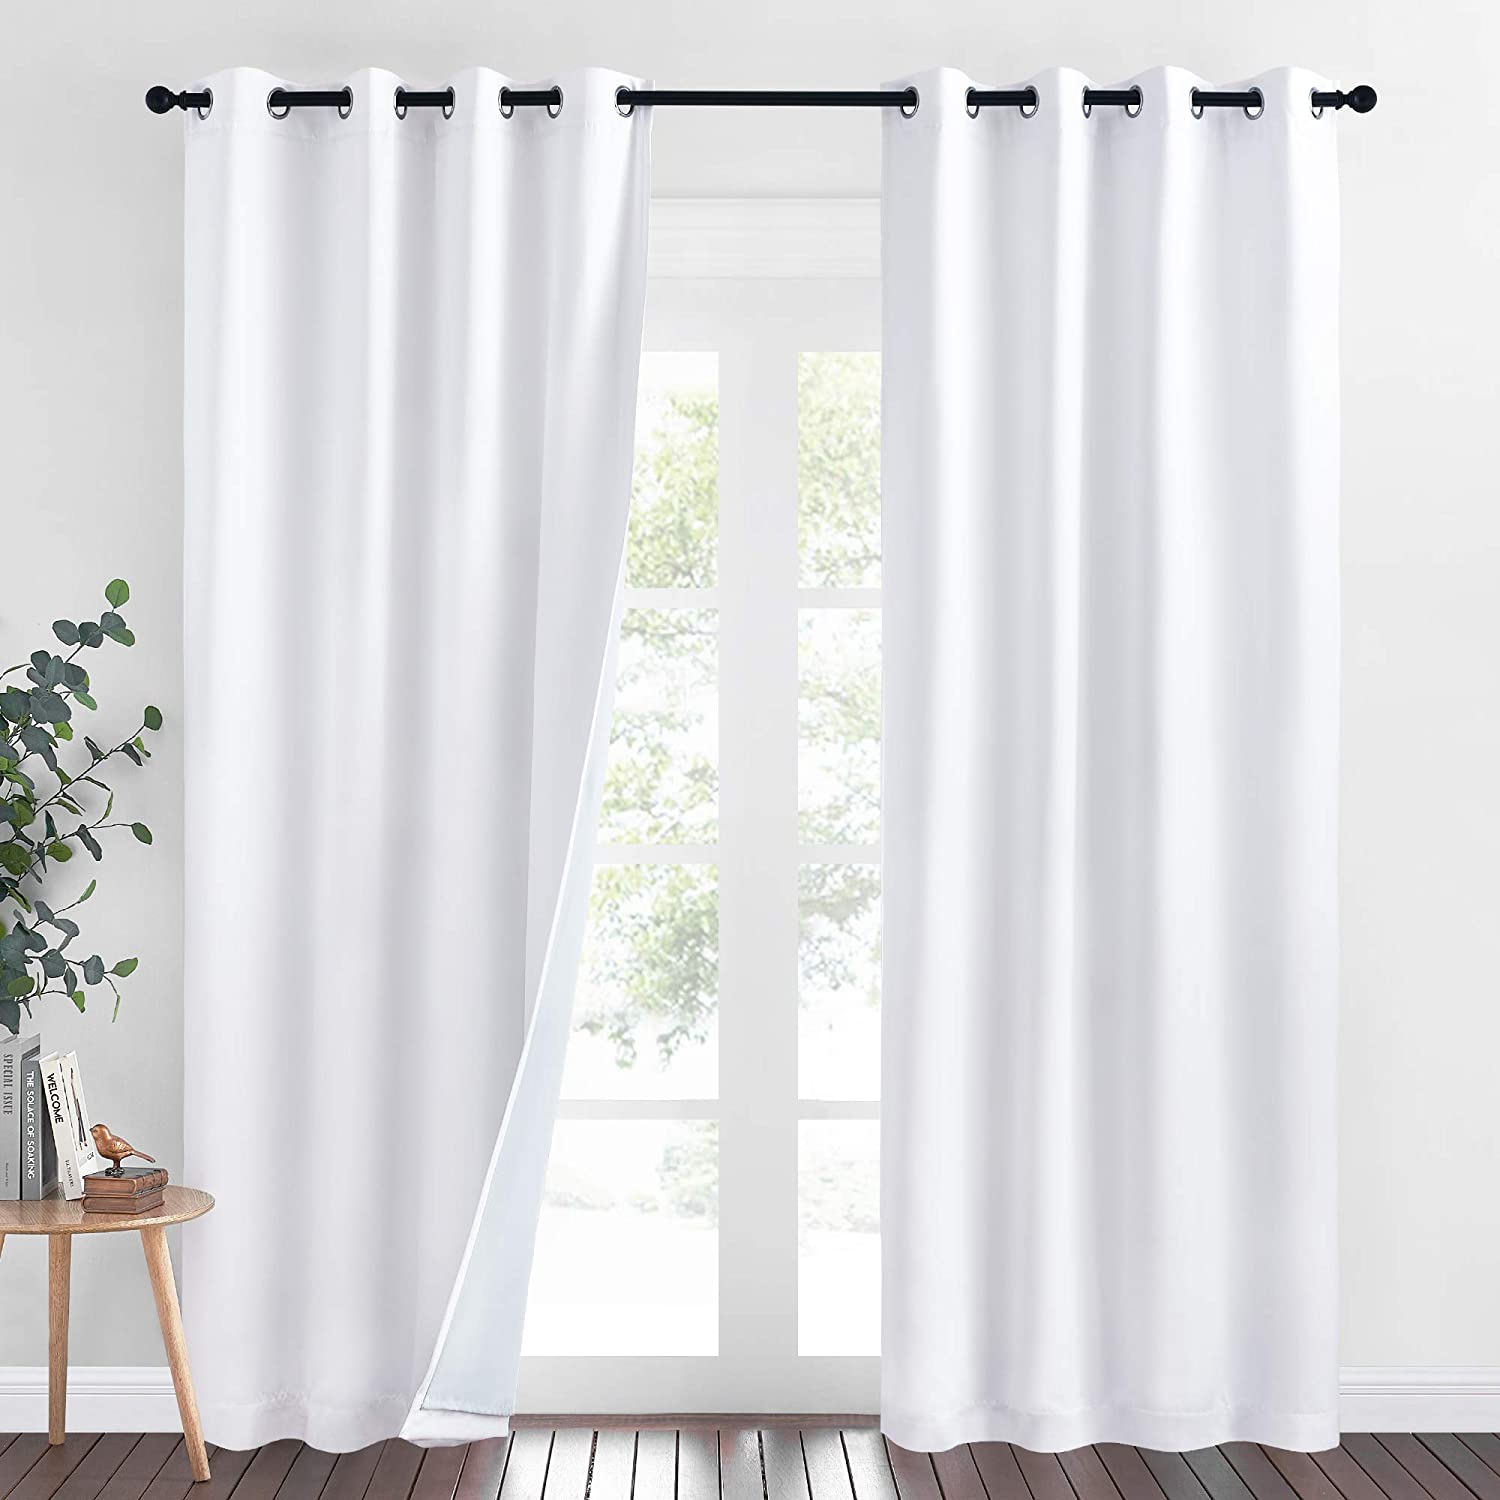 Nicetown-2.5-PM-soundproof-curtain